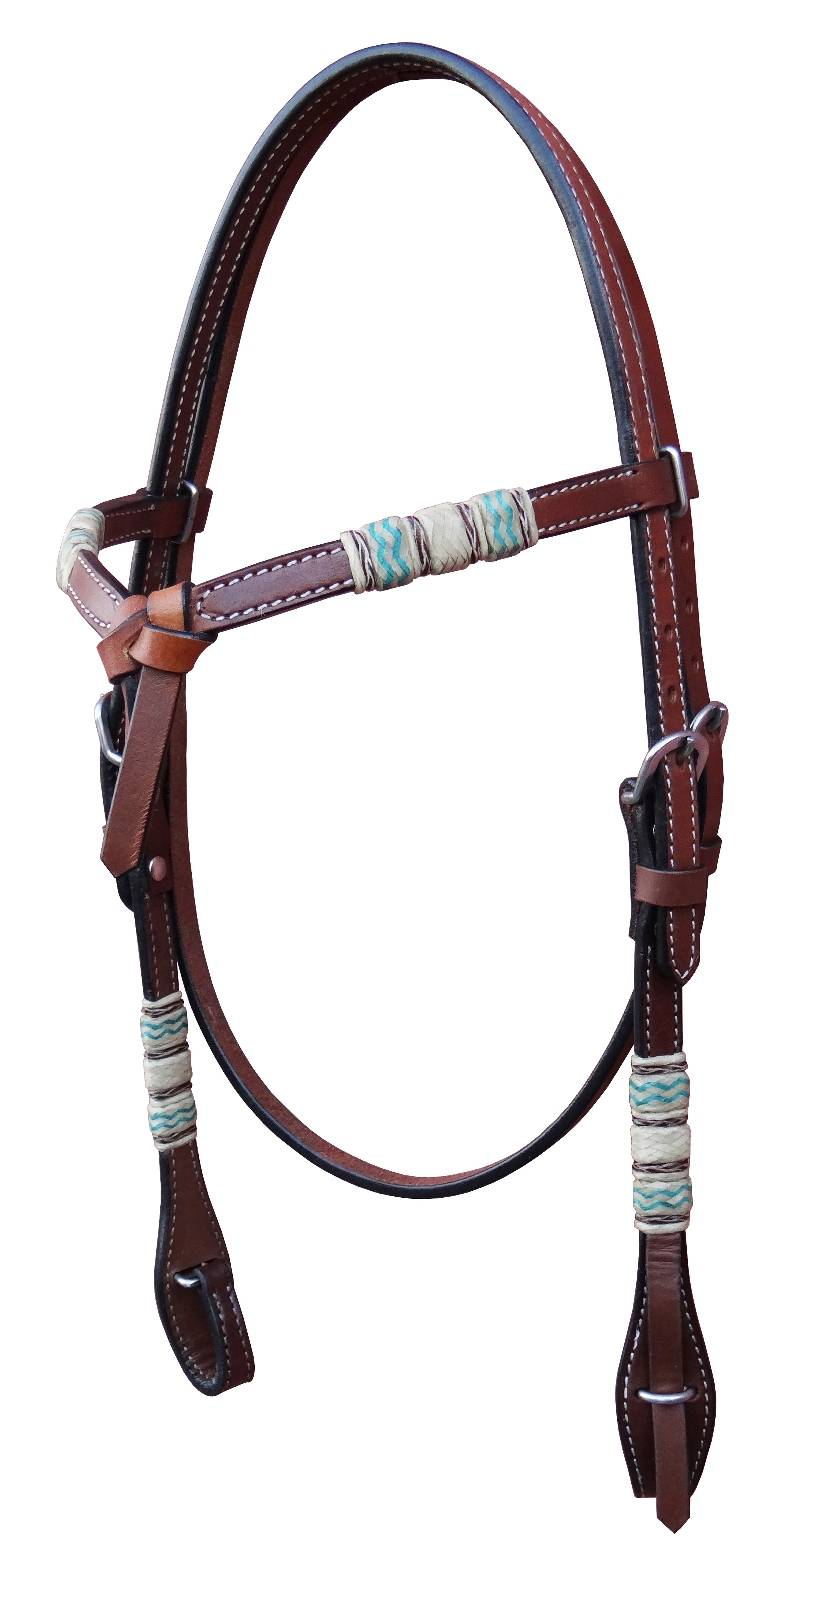 Turn-Two Equine Knotted Headstall Laredo